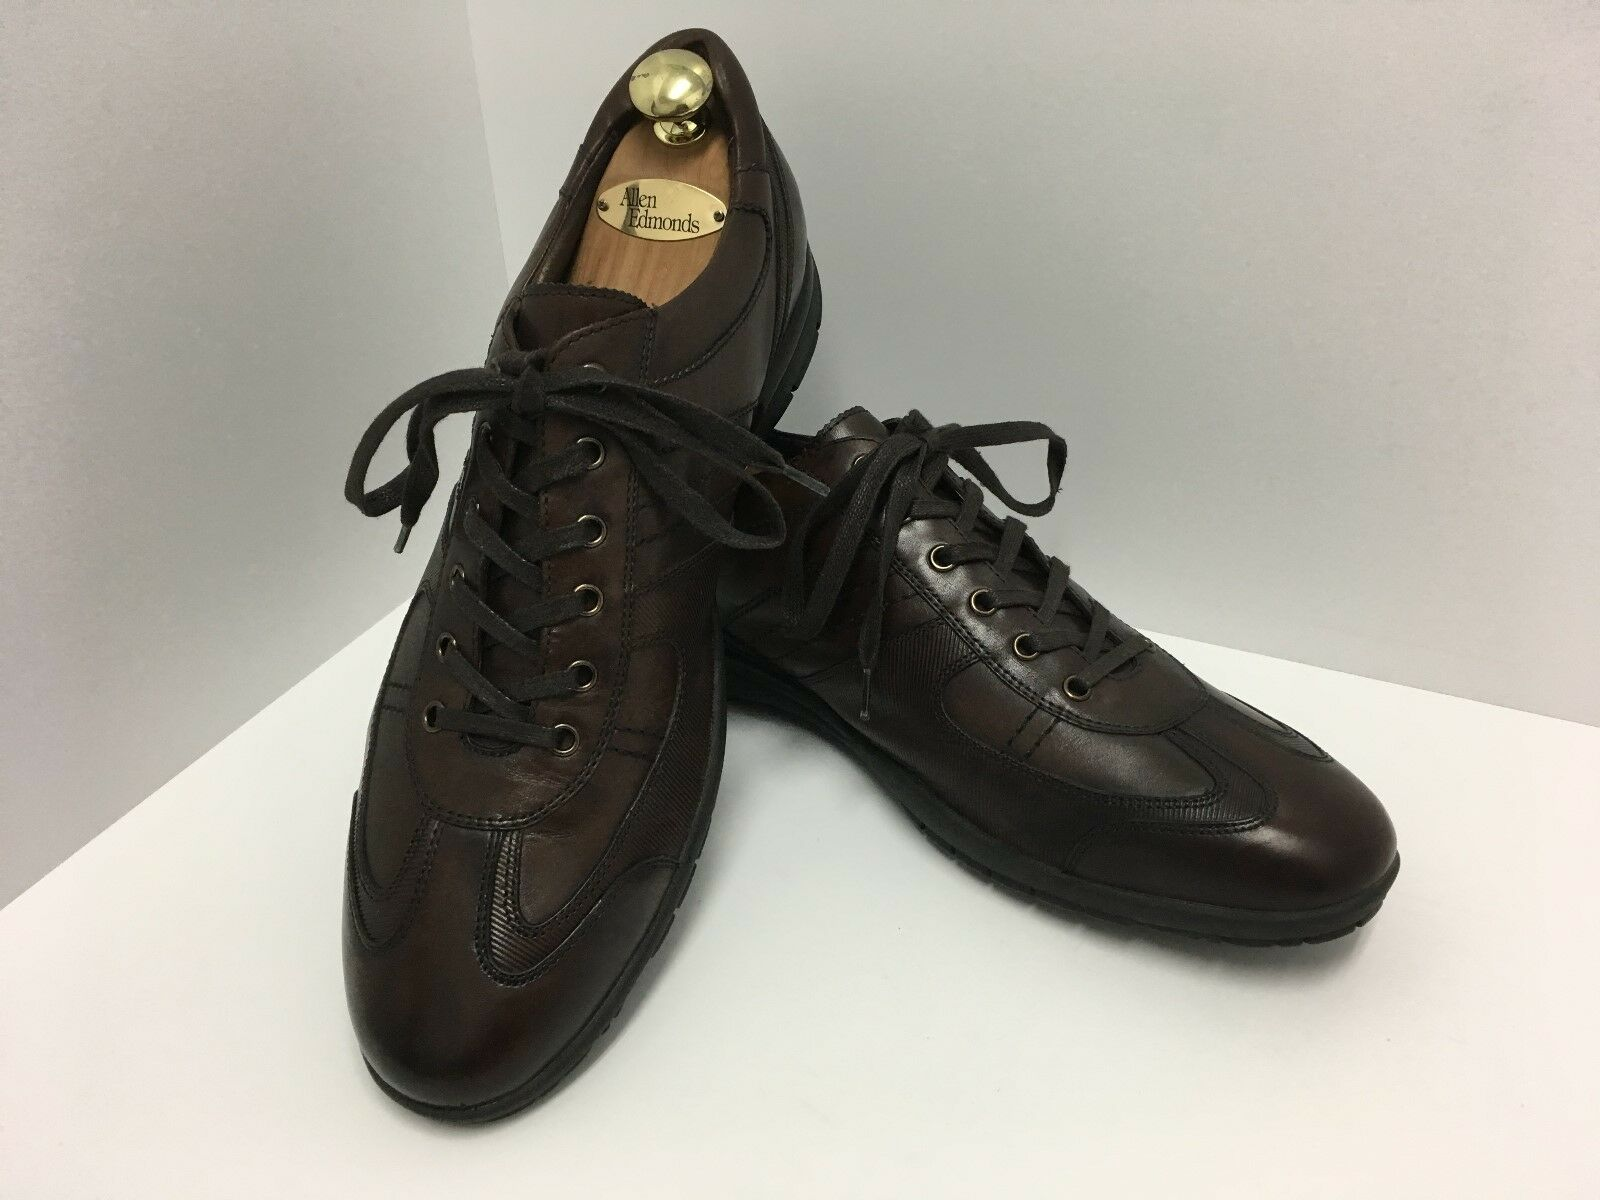 Kenneth Cole New York Mens Brown Leather Lace Up Casual shoes Sneaker Size 11.5M